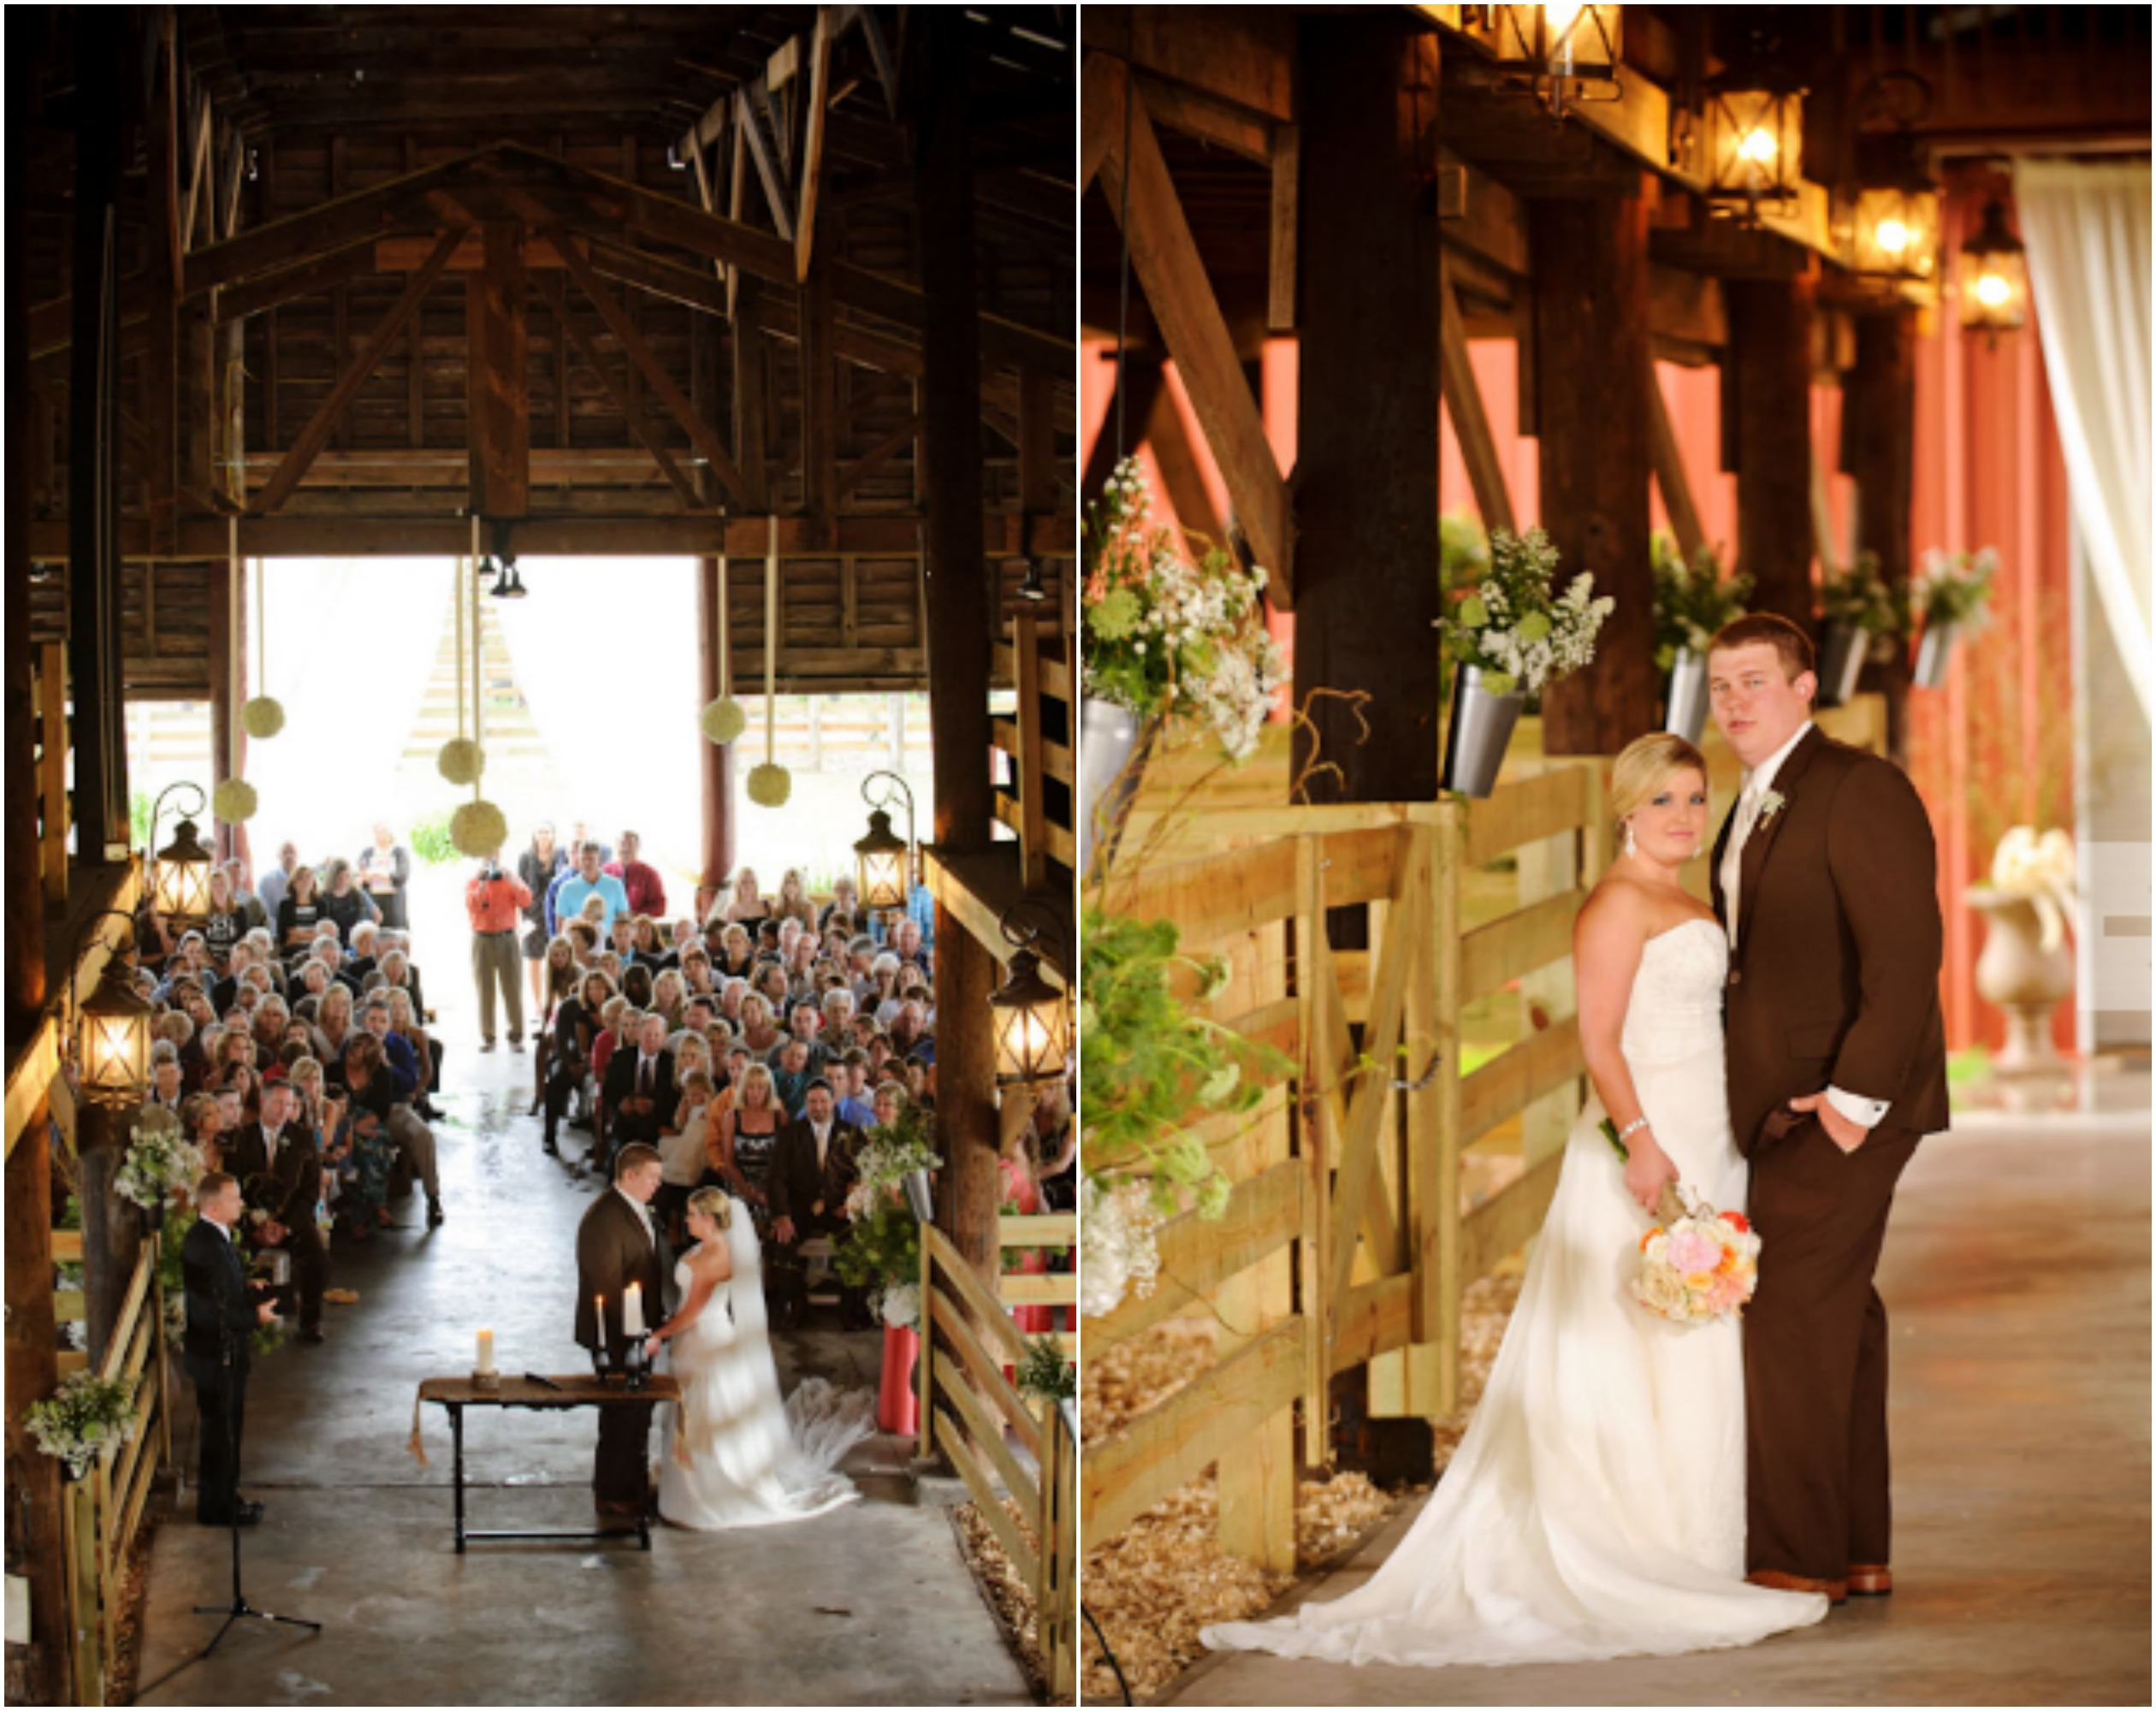 Florida Country Barn Wedding At Santa Fe River Ranch